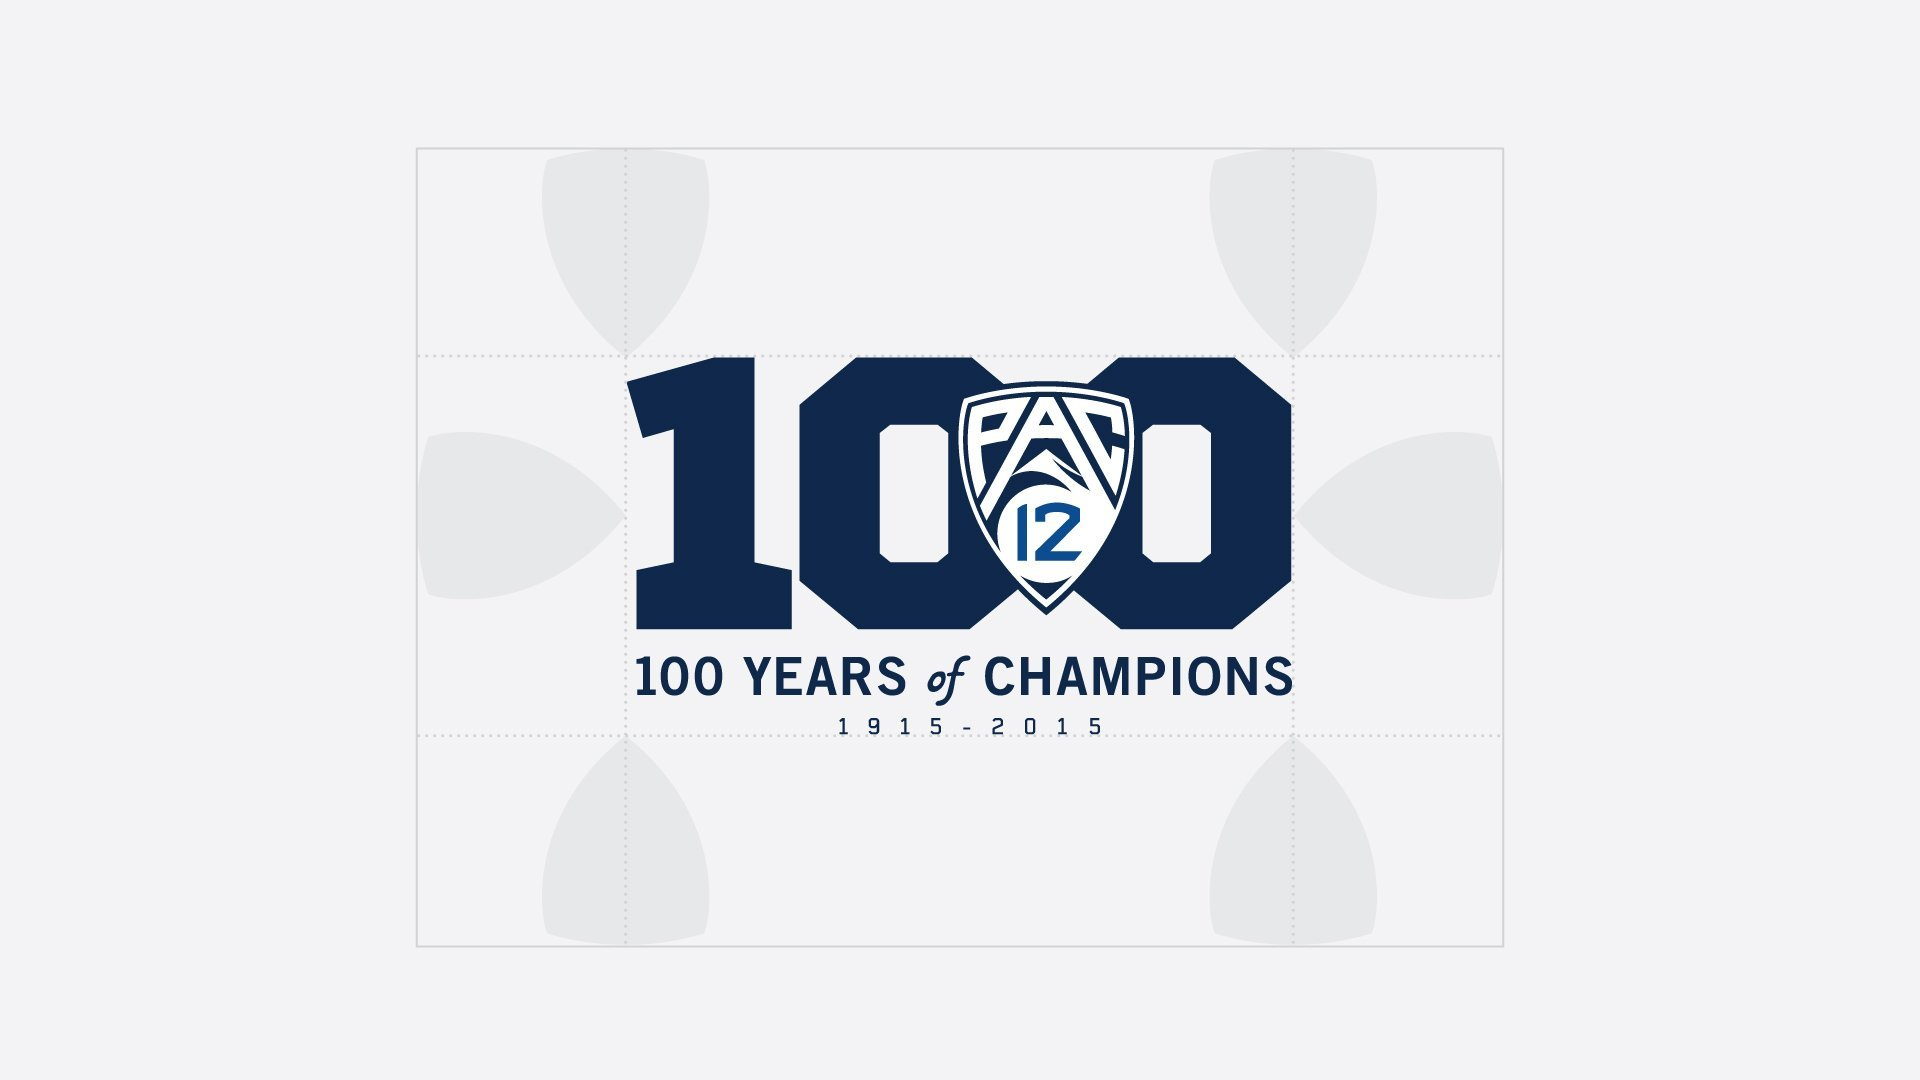 Pac-12 100 Years of Champions Picture